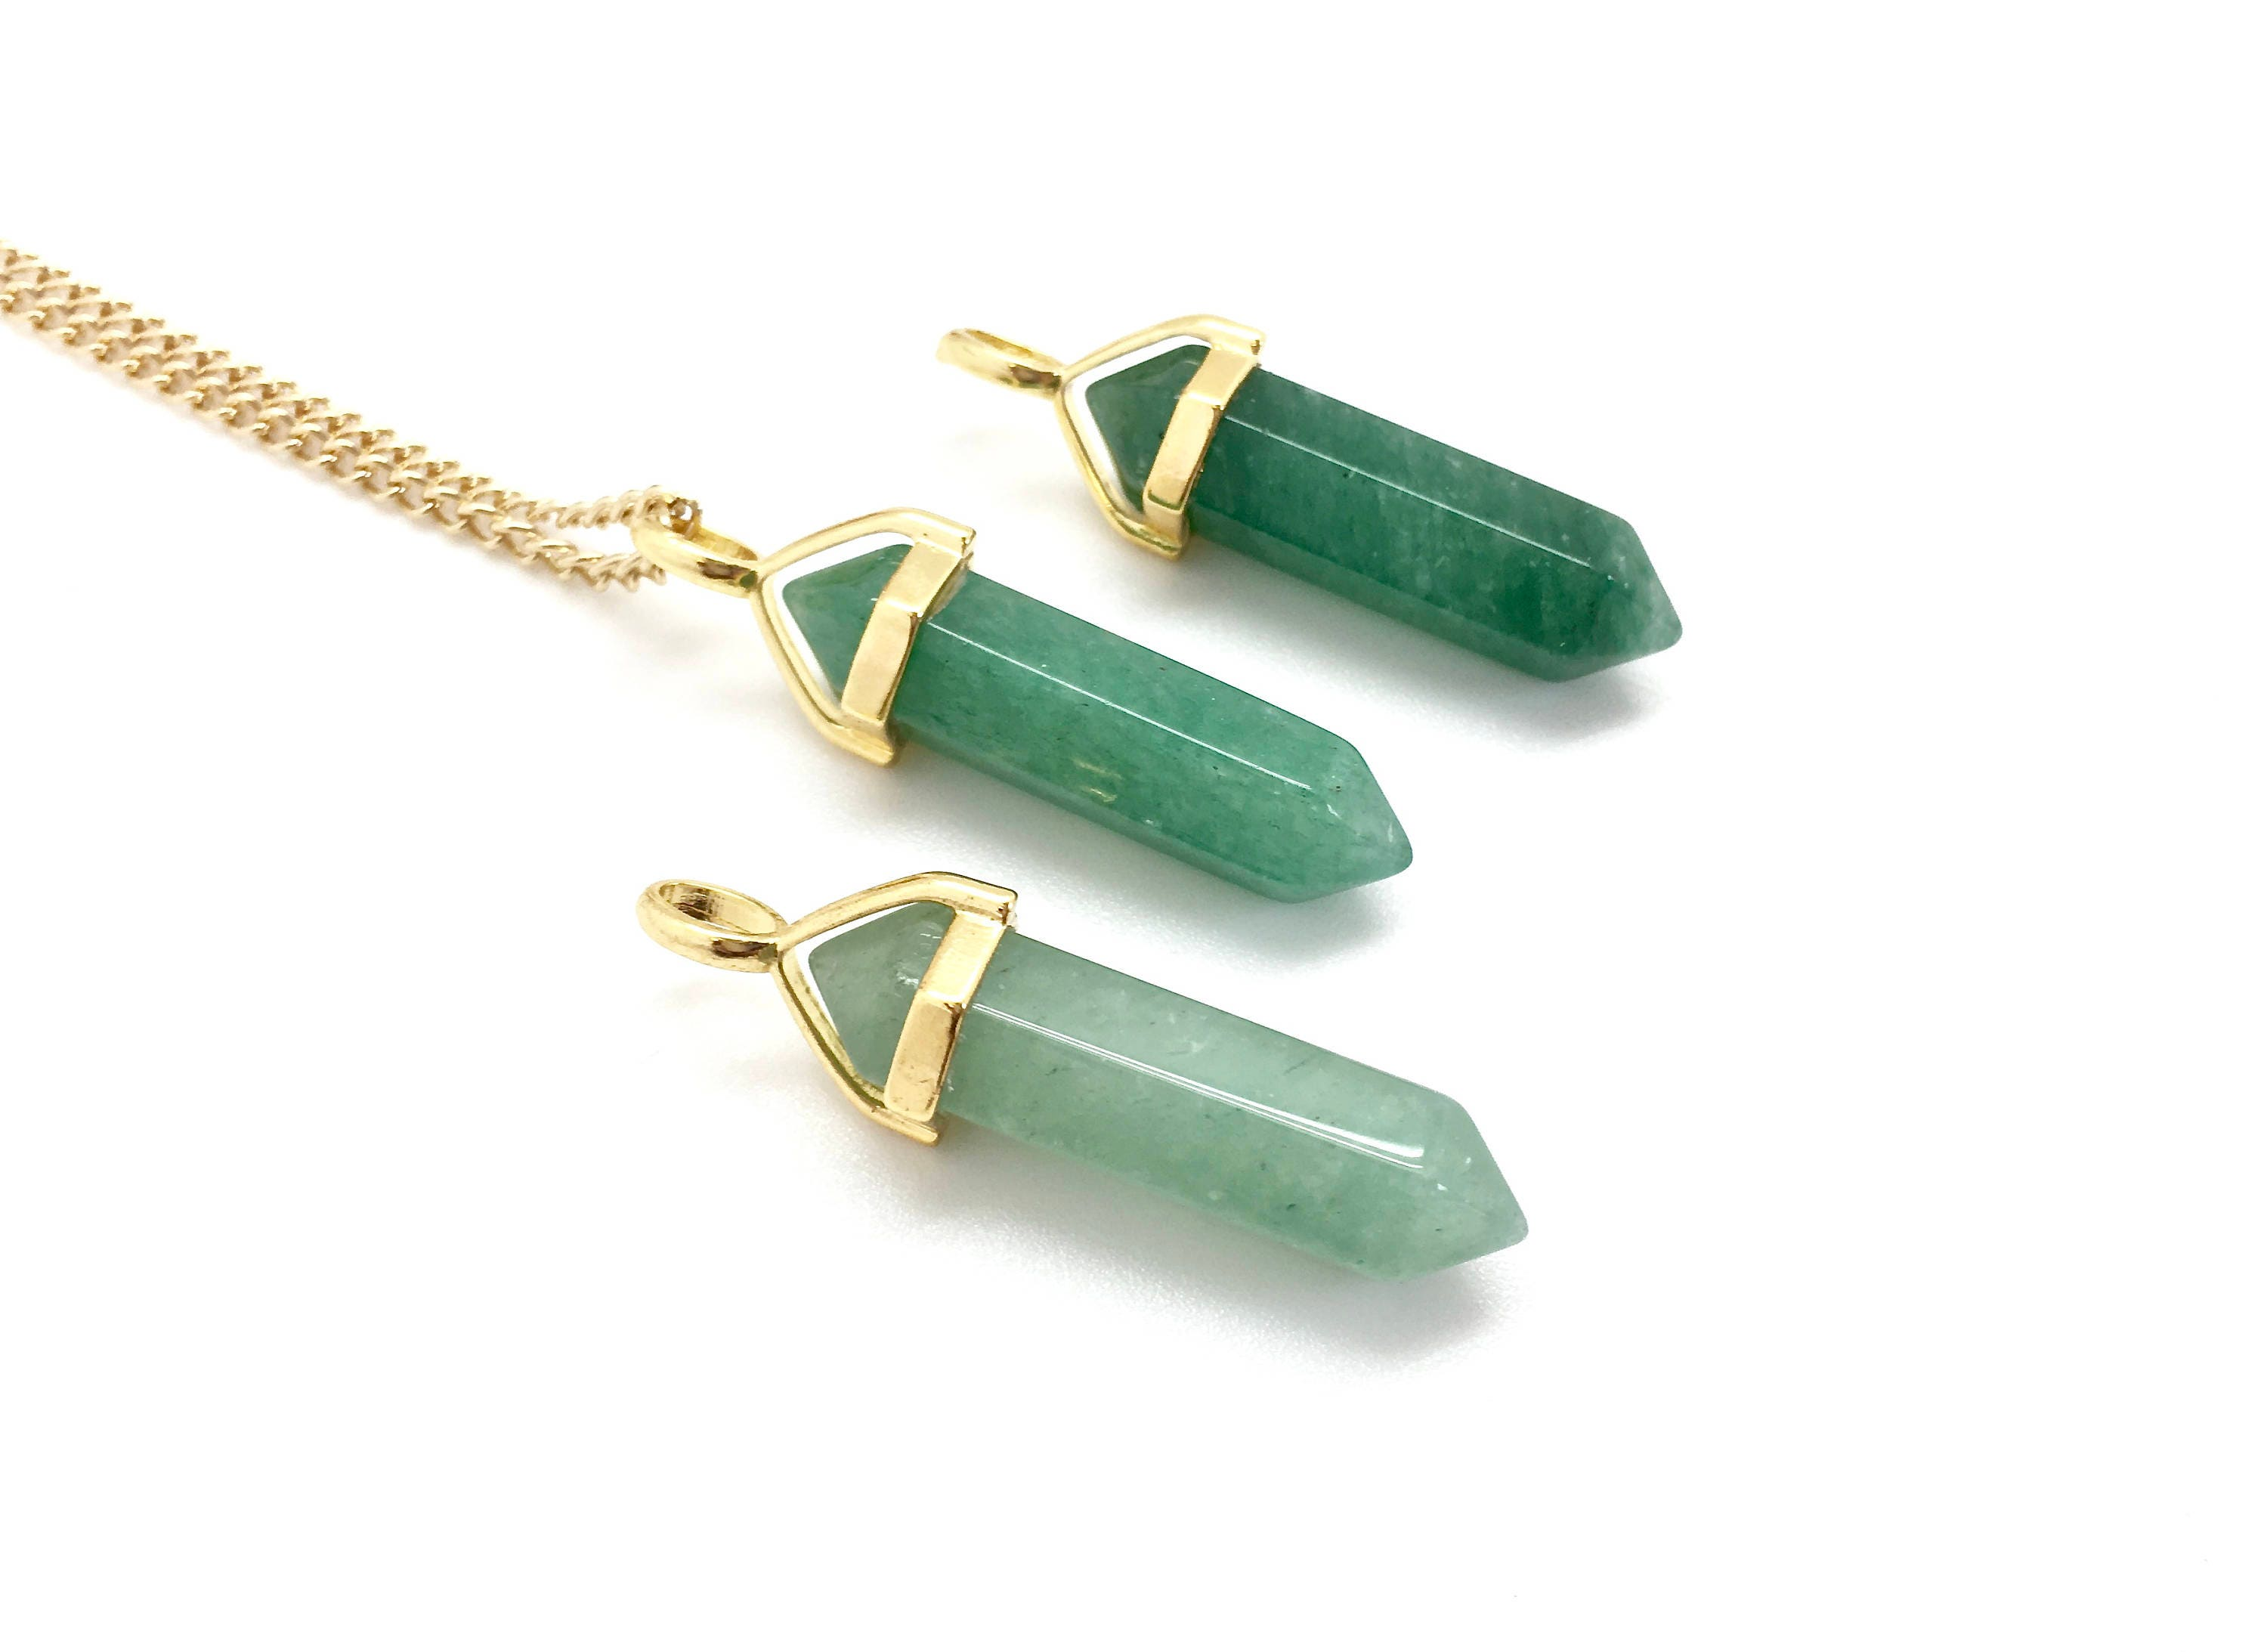 36ea47213e9bb Green Aventurine Necklace - Green Aventurine Pendant - healing crystal  necklace - healing necklace - crystal point pendant - chakra - gold